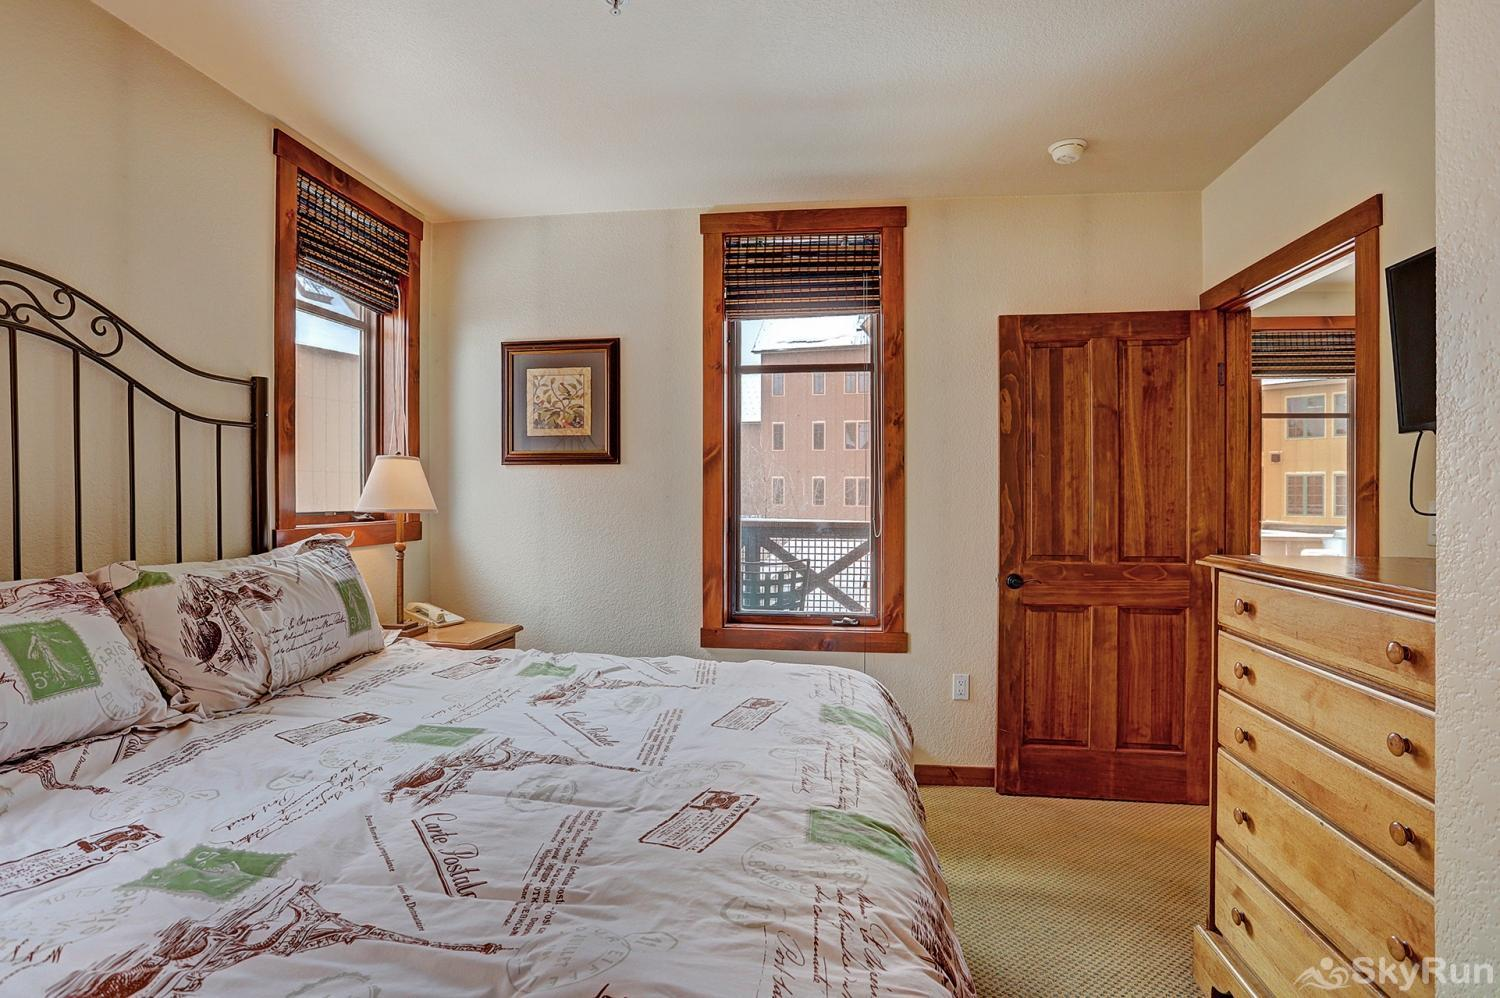 Main Street Station 2203 Additional view of second king bedroom with ensuite bath